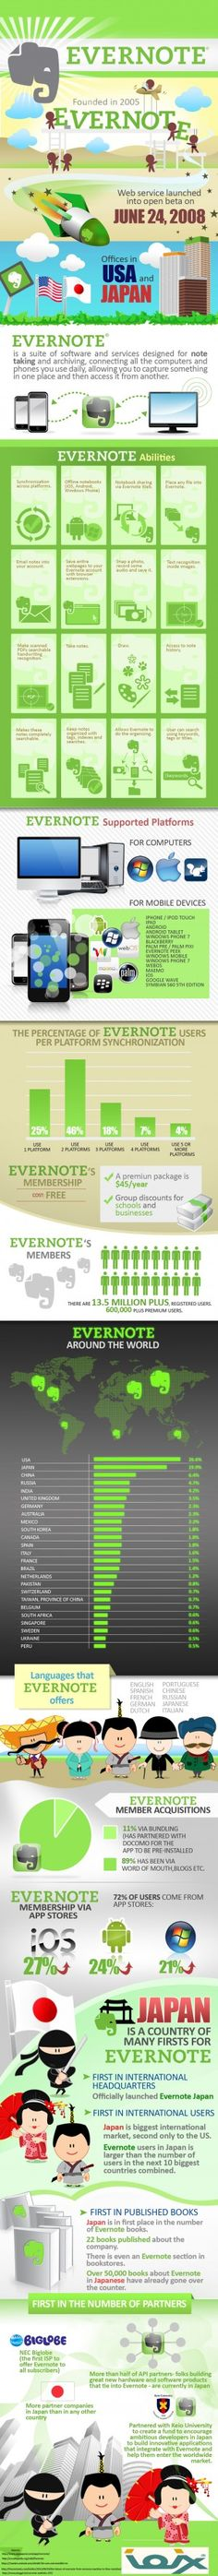 Evernote provides ways in which individuals can store their data. The data is sharable.  The Evernote software is designed to assist students with note taking. The easily accessible program has a phone application. Evernote provides a synchronized platform at no cost to the student. Students will have the ability to clip articles, keep receipts, encrypt data, create tables and more. The students in my APSU 1000 course are taught how to use Evernote.